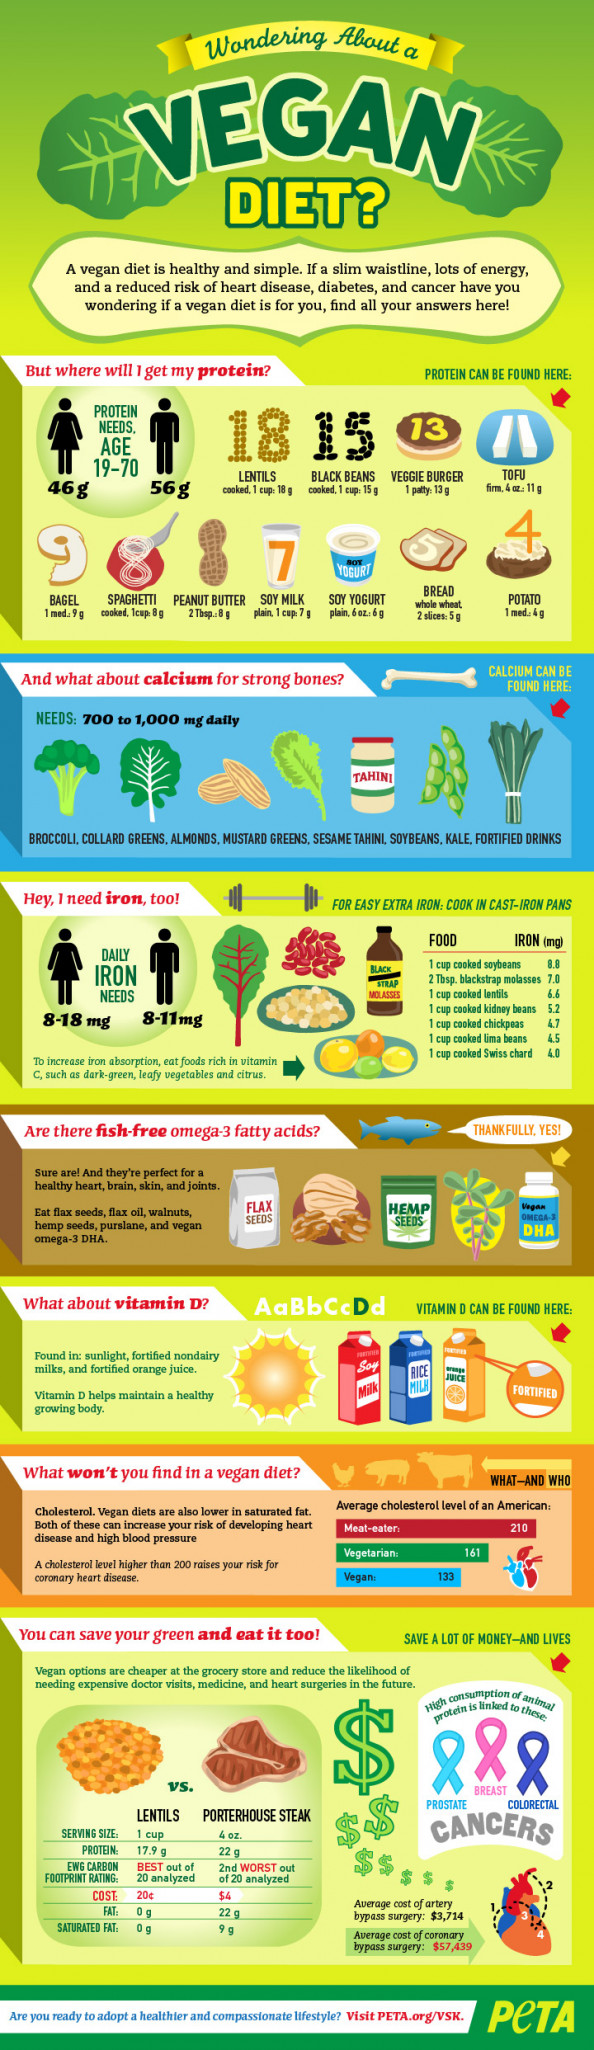 Wondering About a Vegan Diet? Infographic